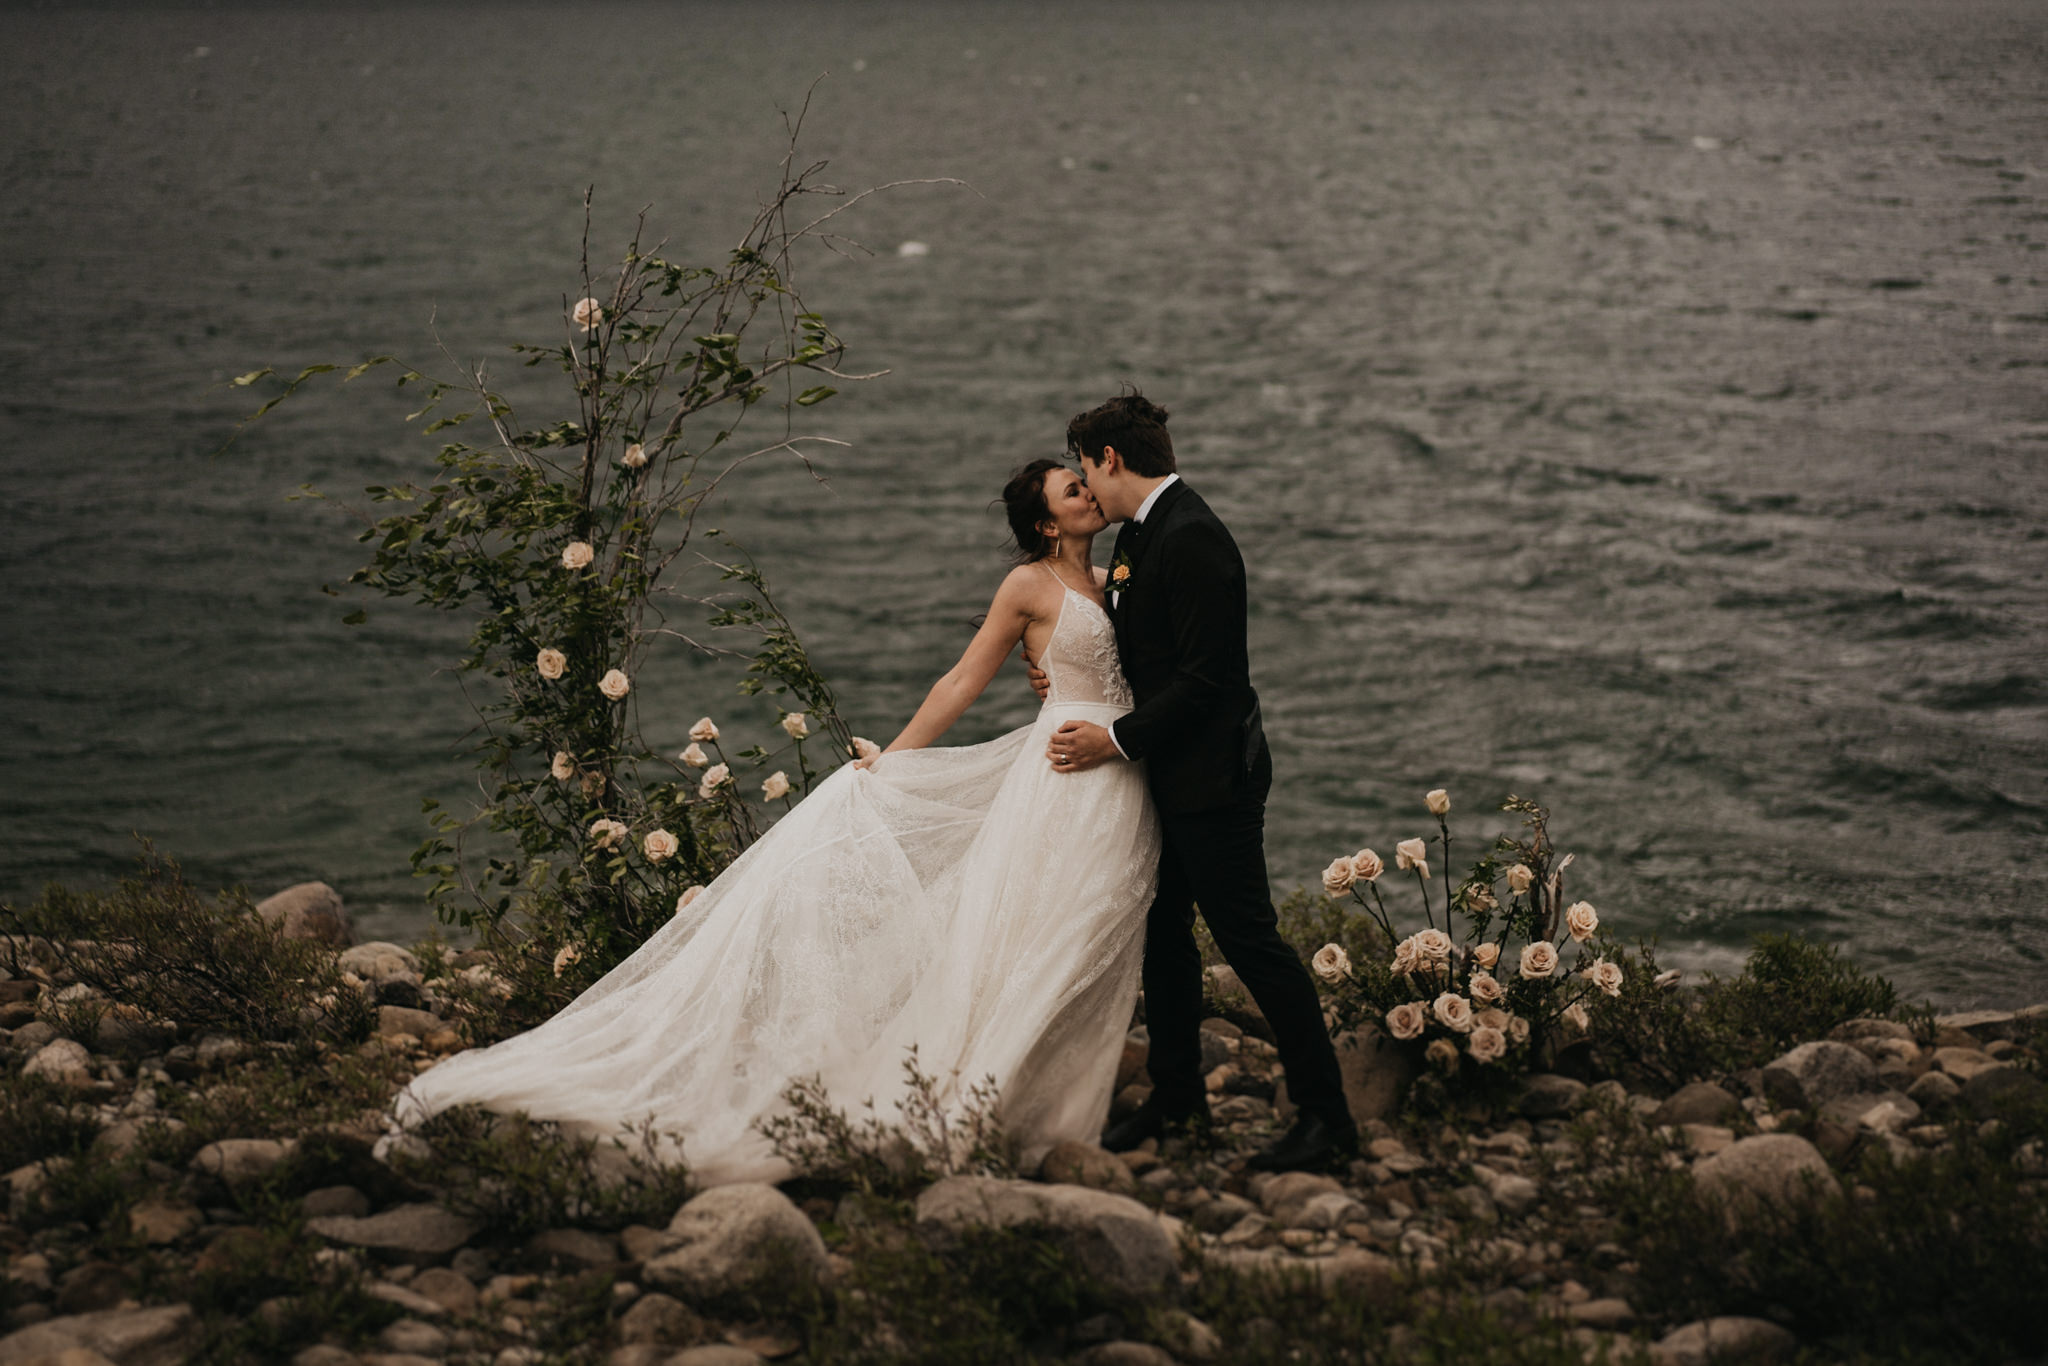 Boho and elegant elopement by an alpine lake in washington state. Gown by Floral Bridal of The Dress Theory Seattle